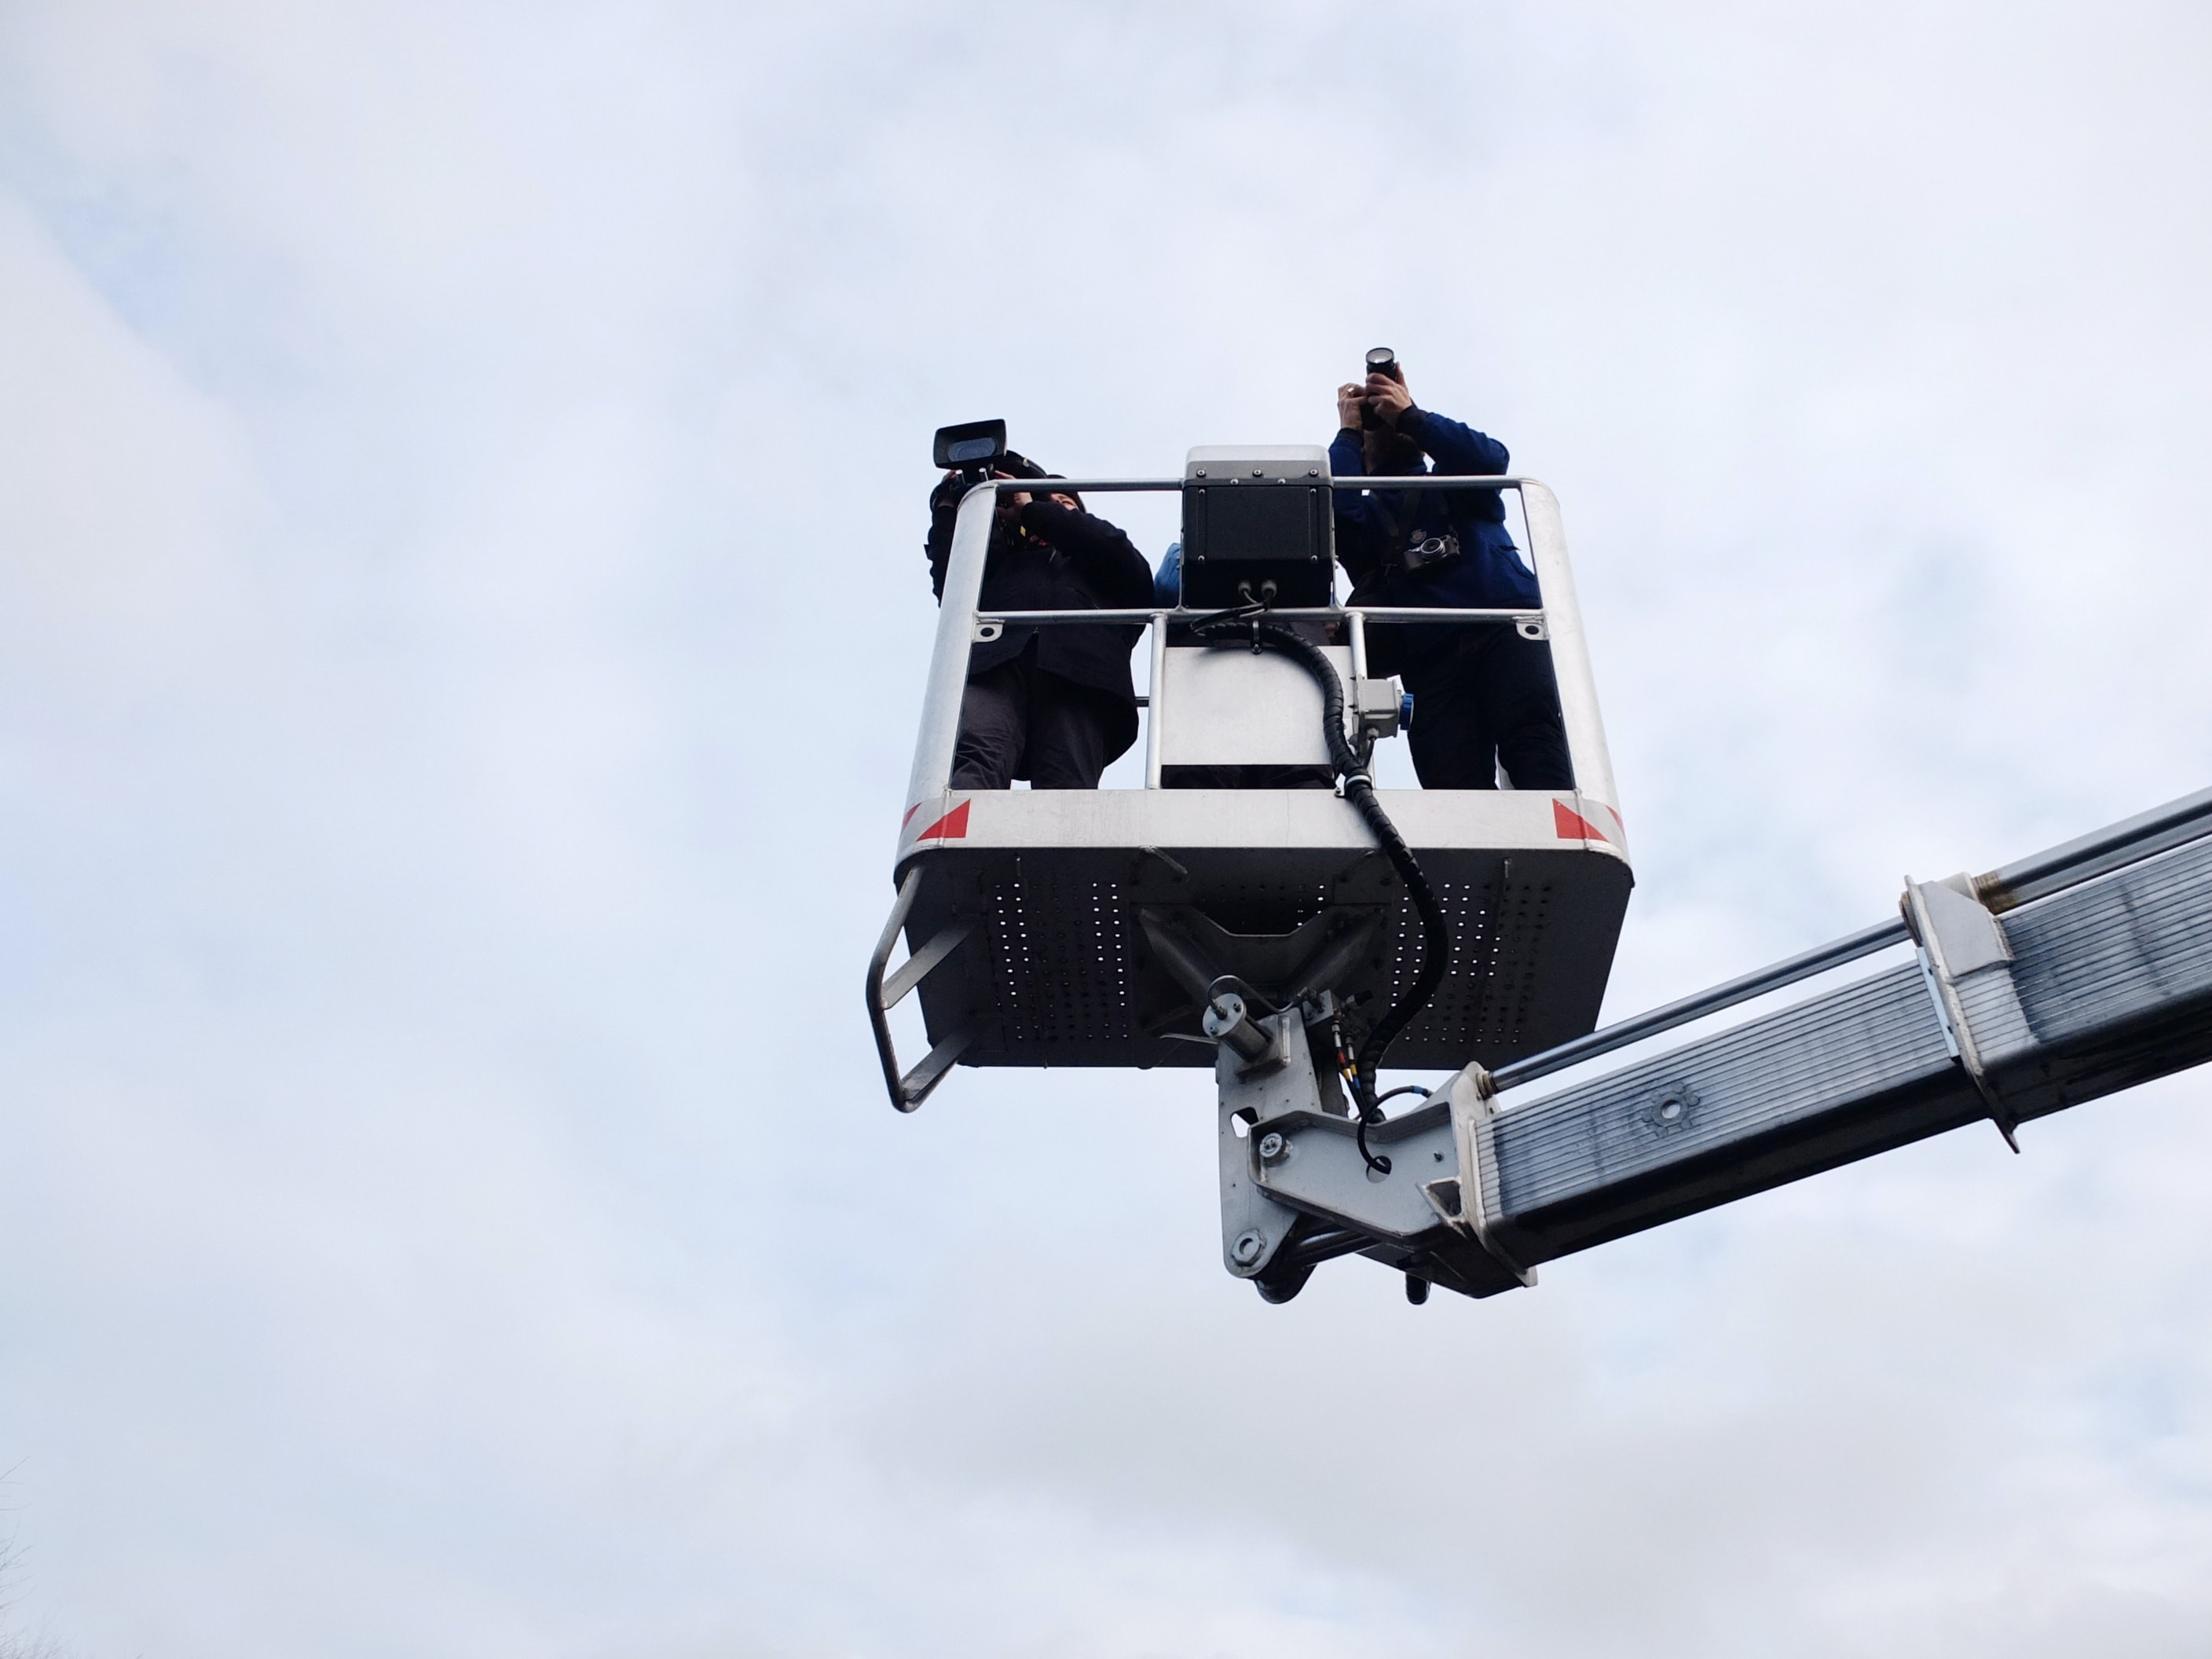 two person standing on cherry picker trailer